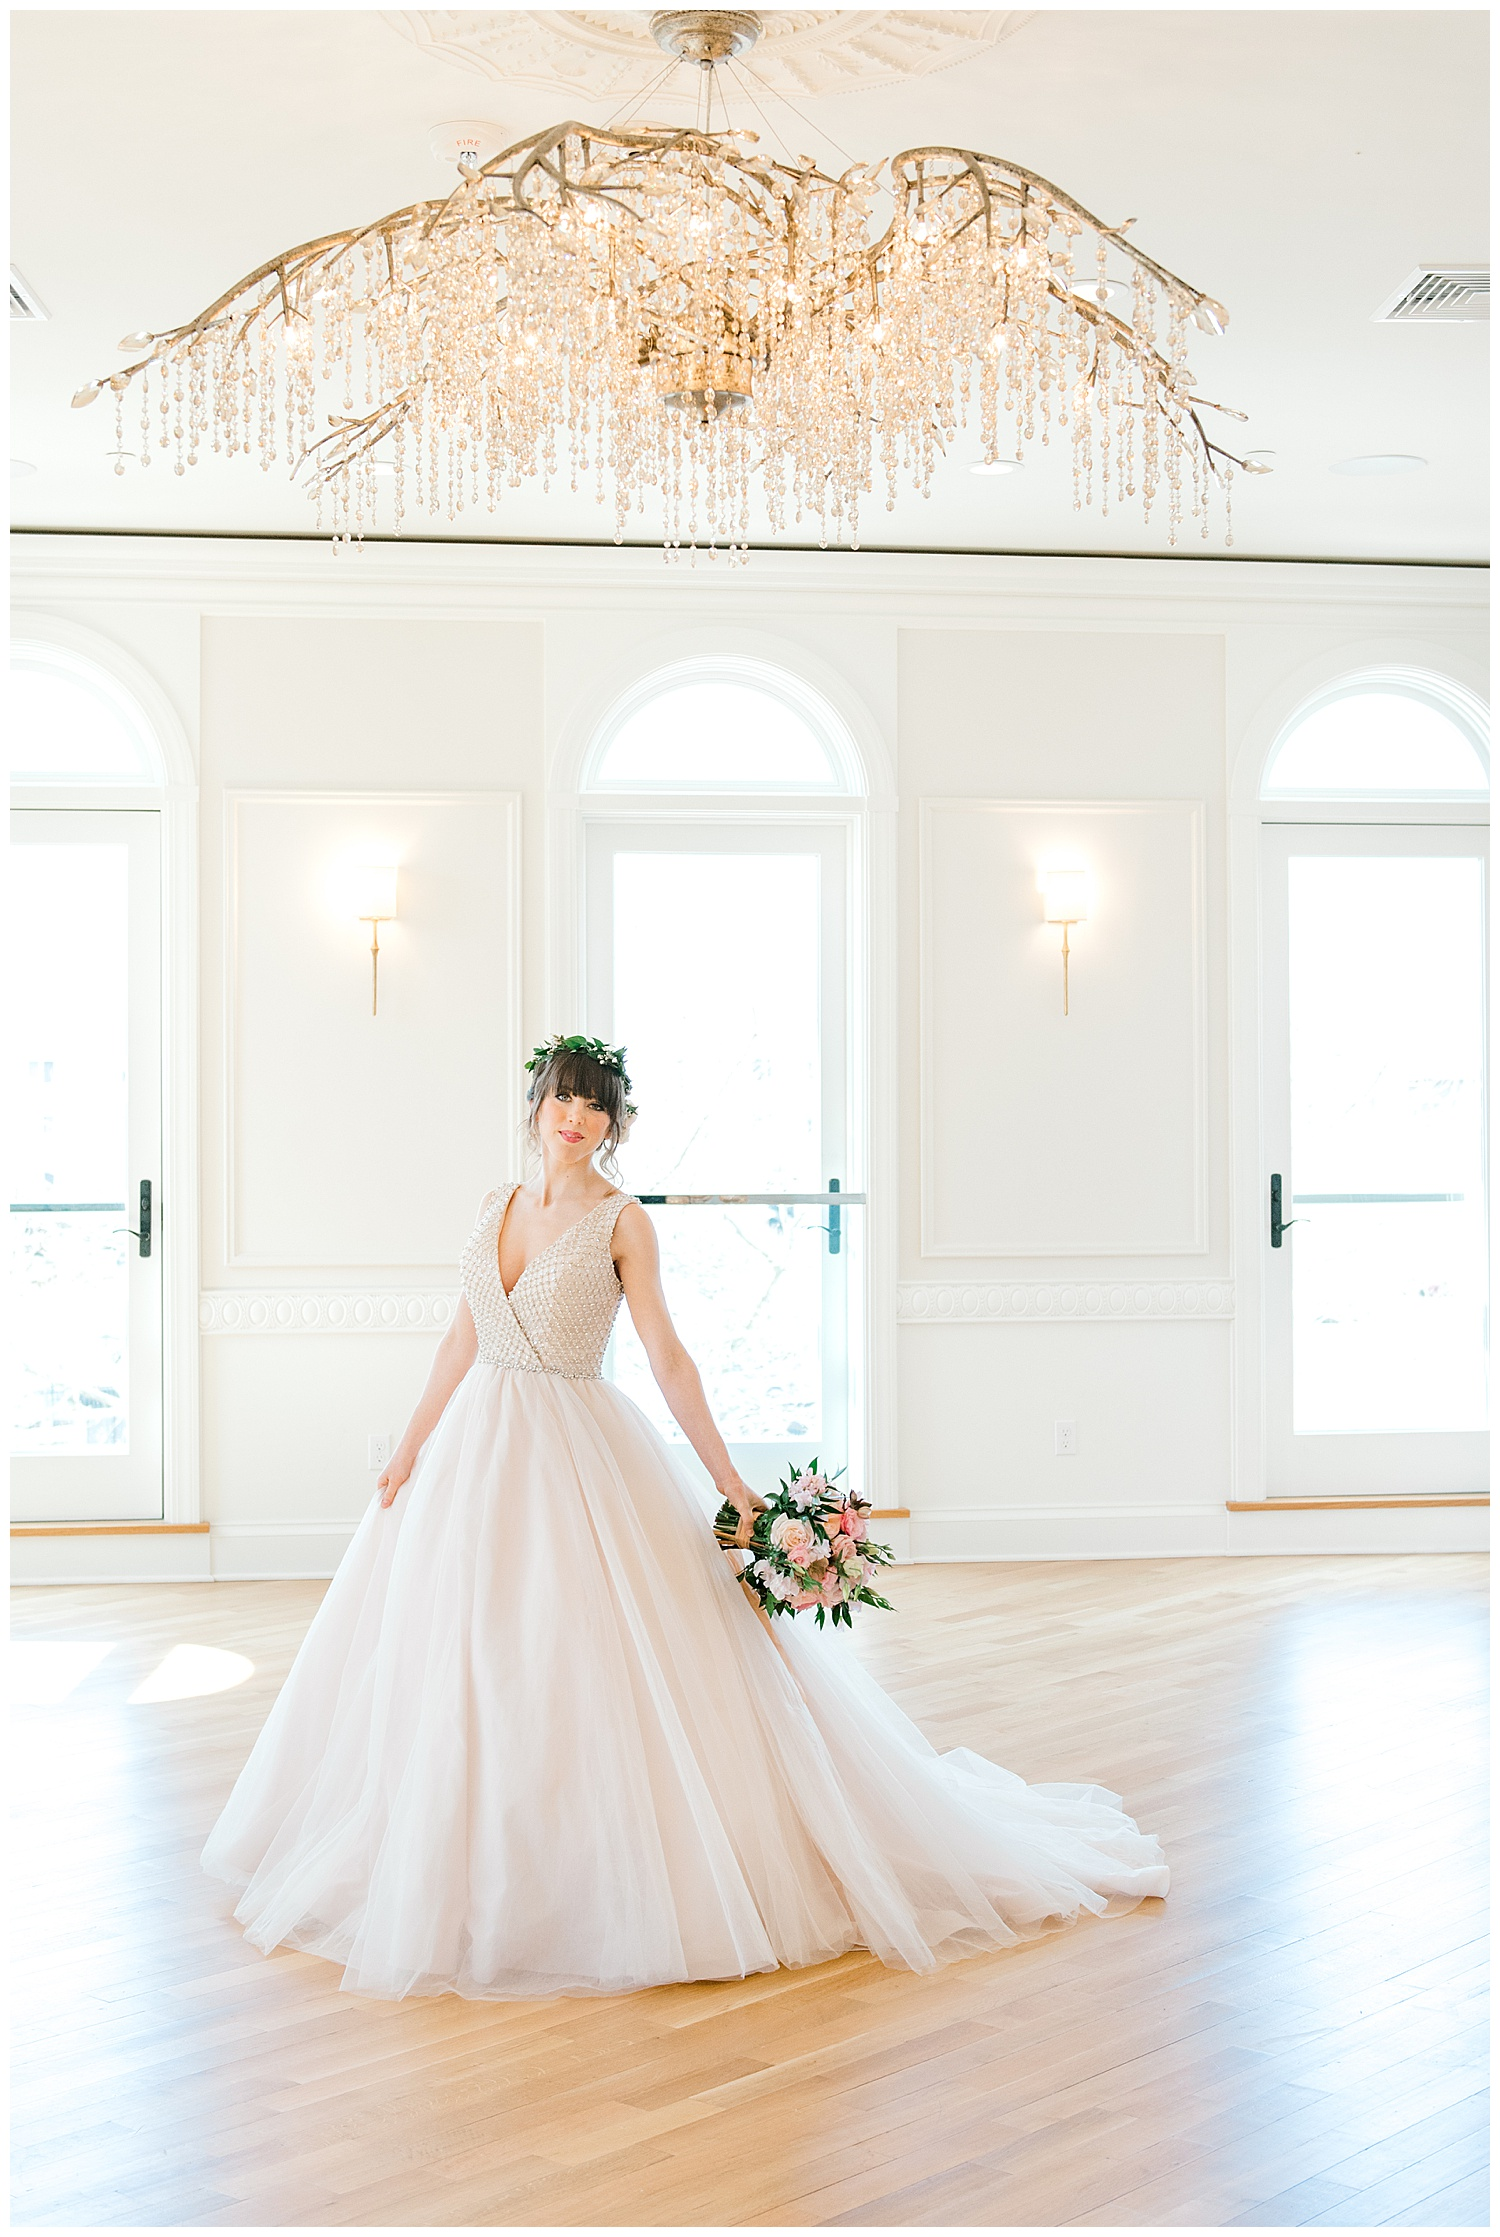 blush-ballerina-wedding-photography-newport-rhode-island-27.jpg